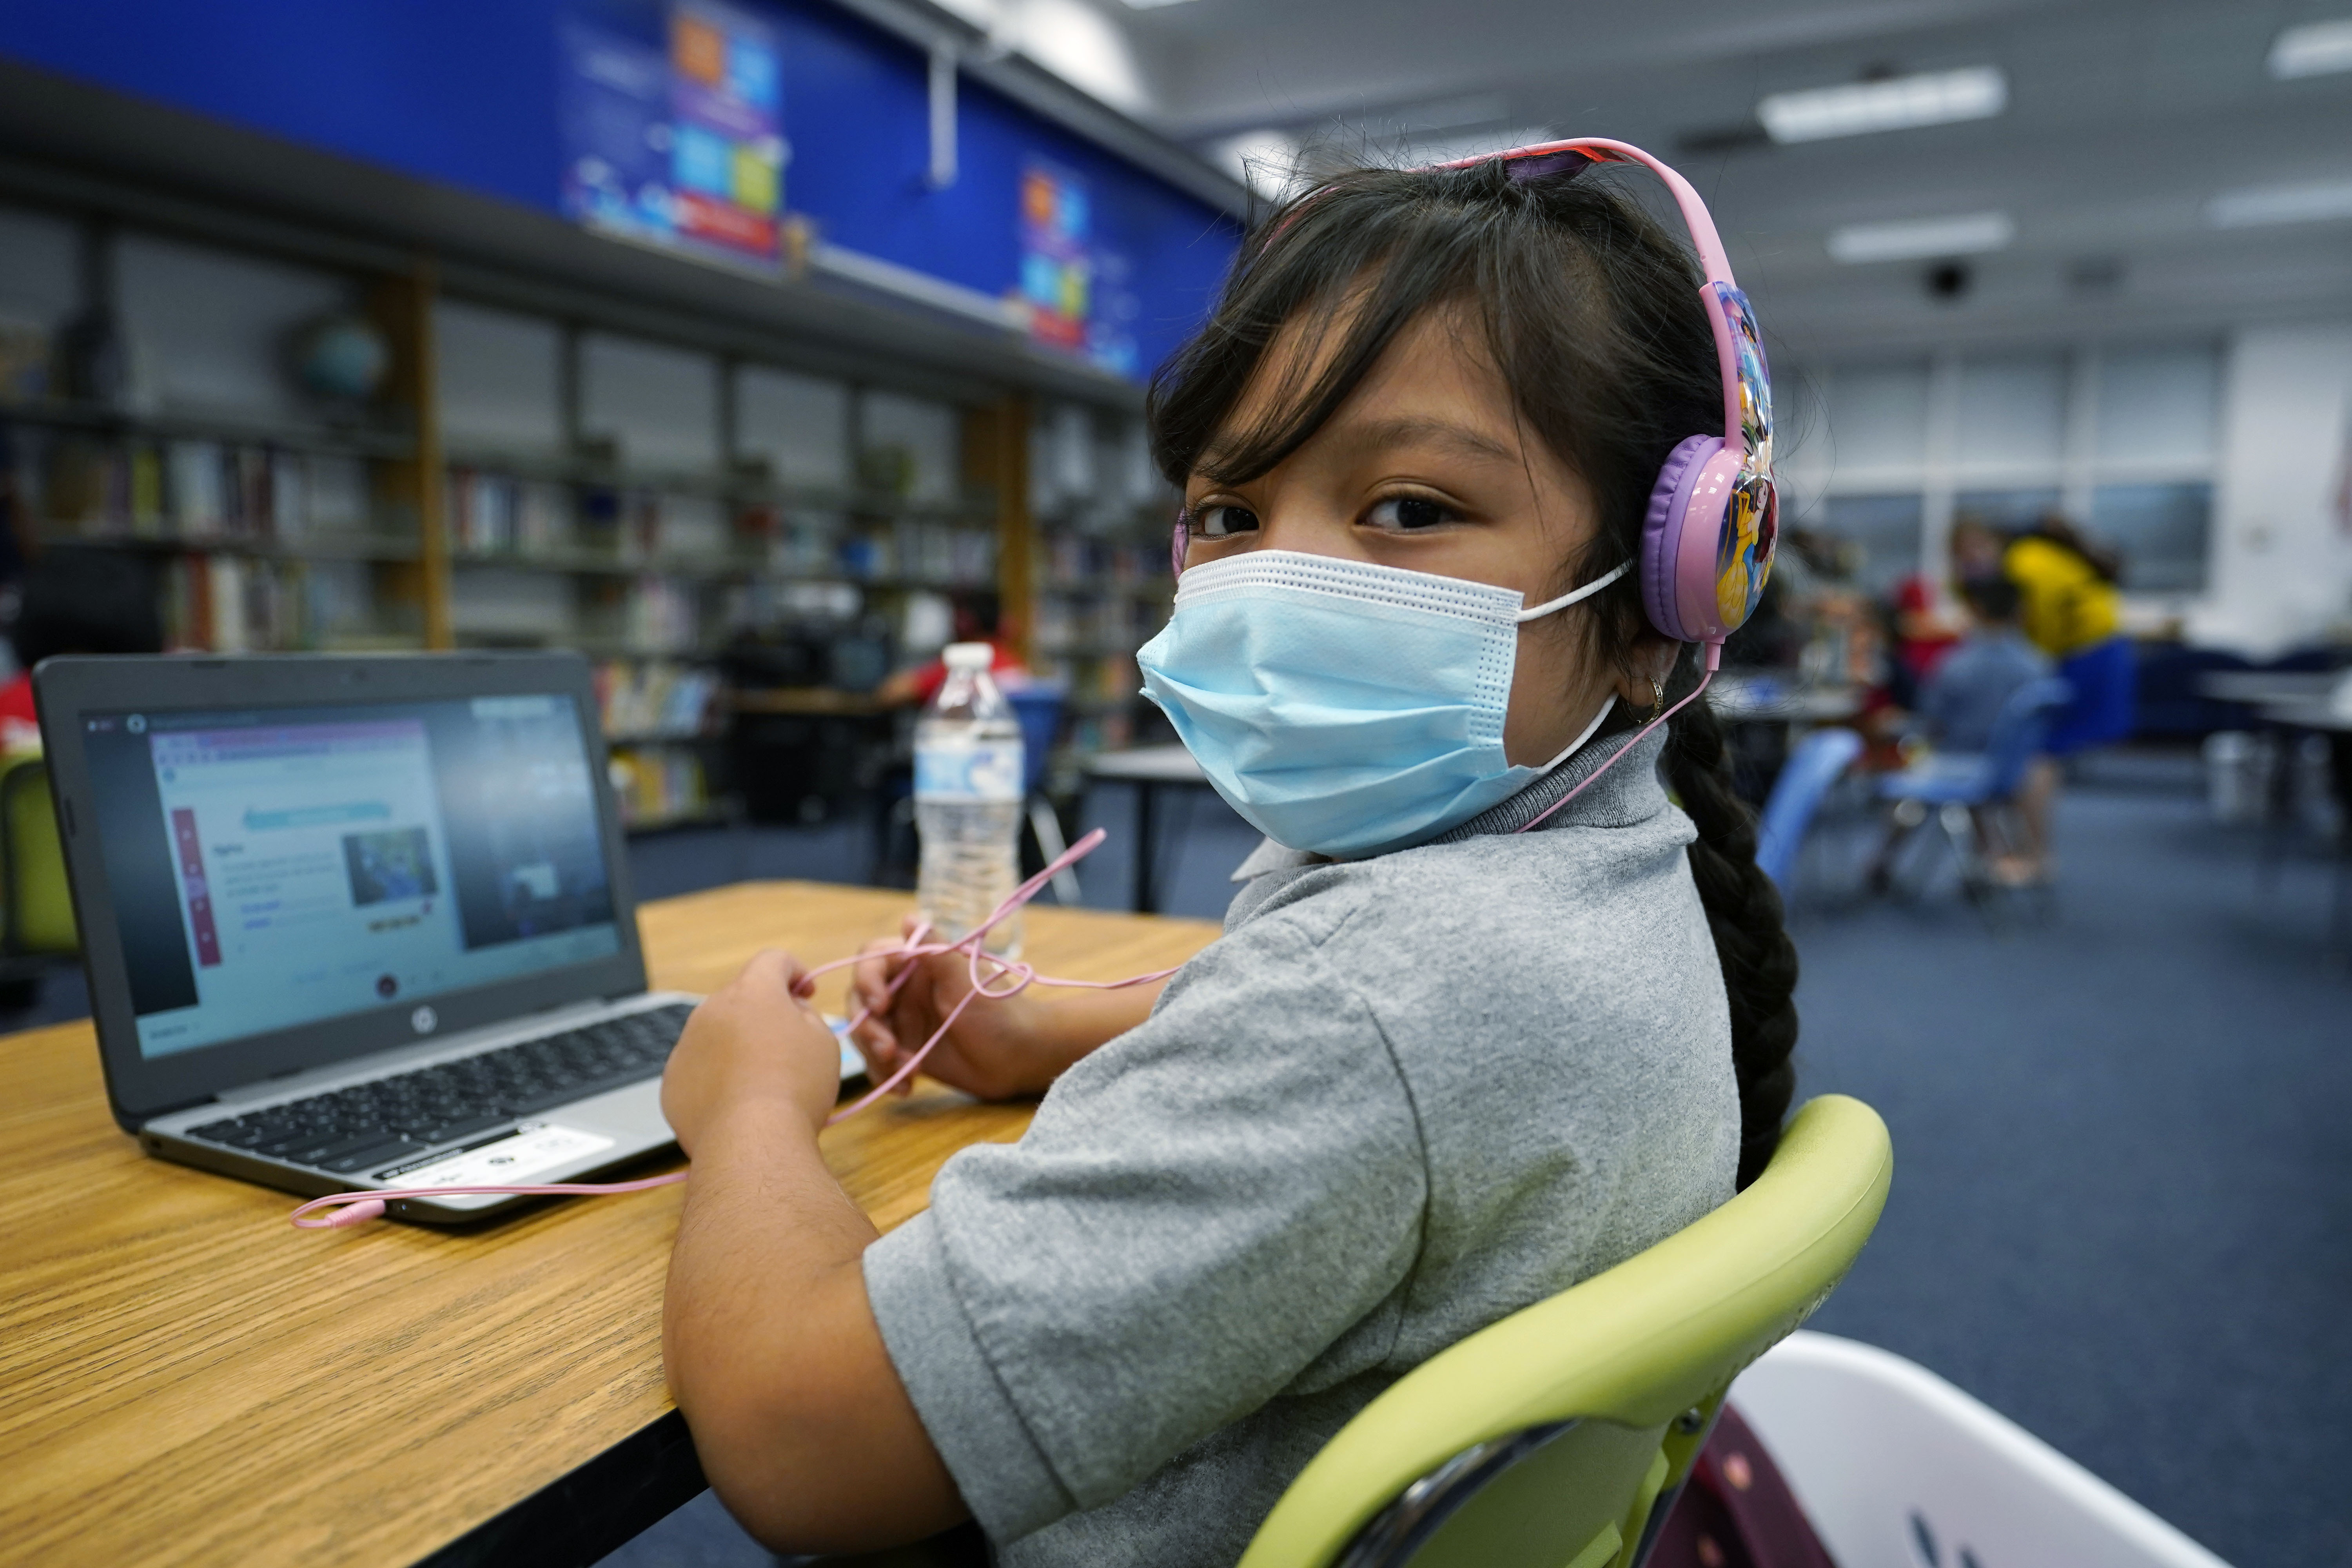 Masked girl works on her laptop at a learning center.